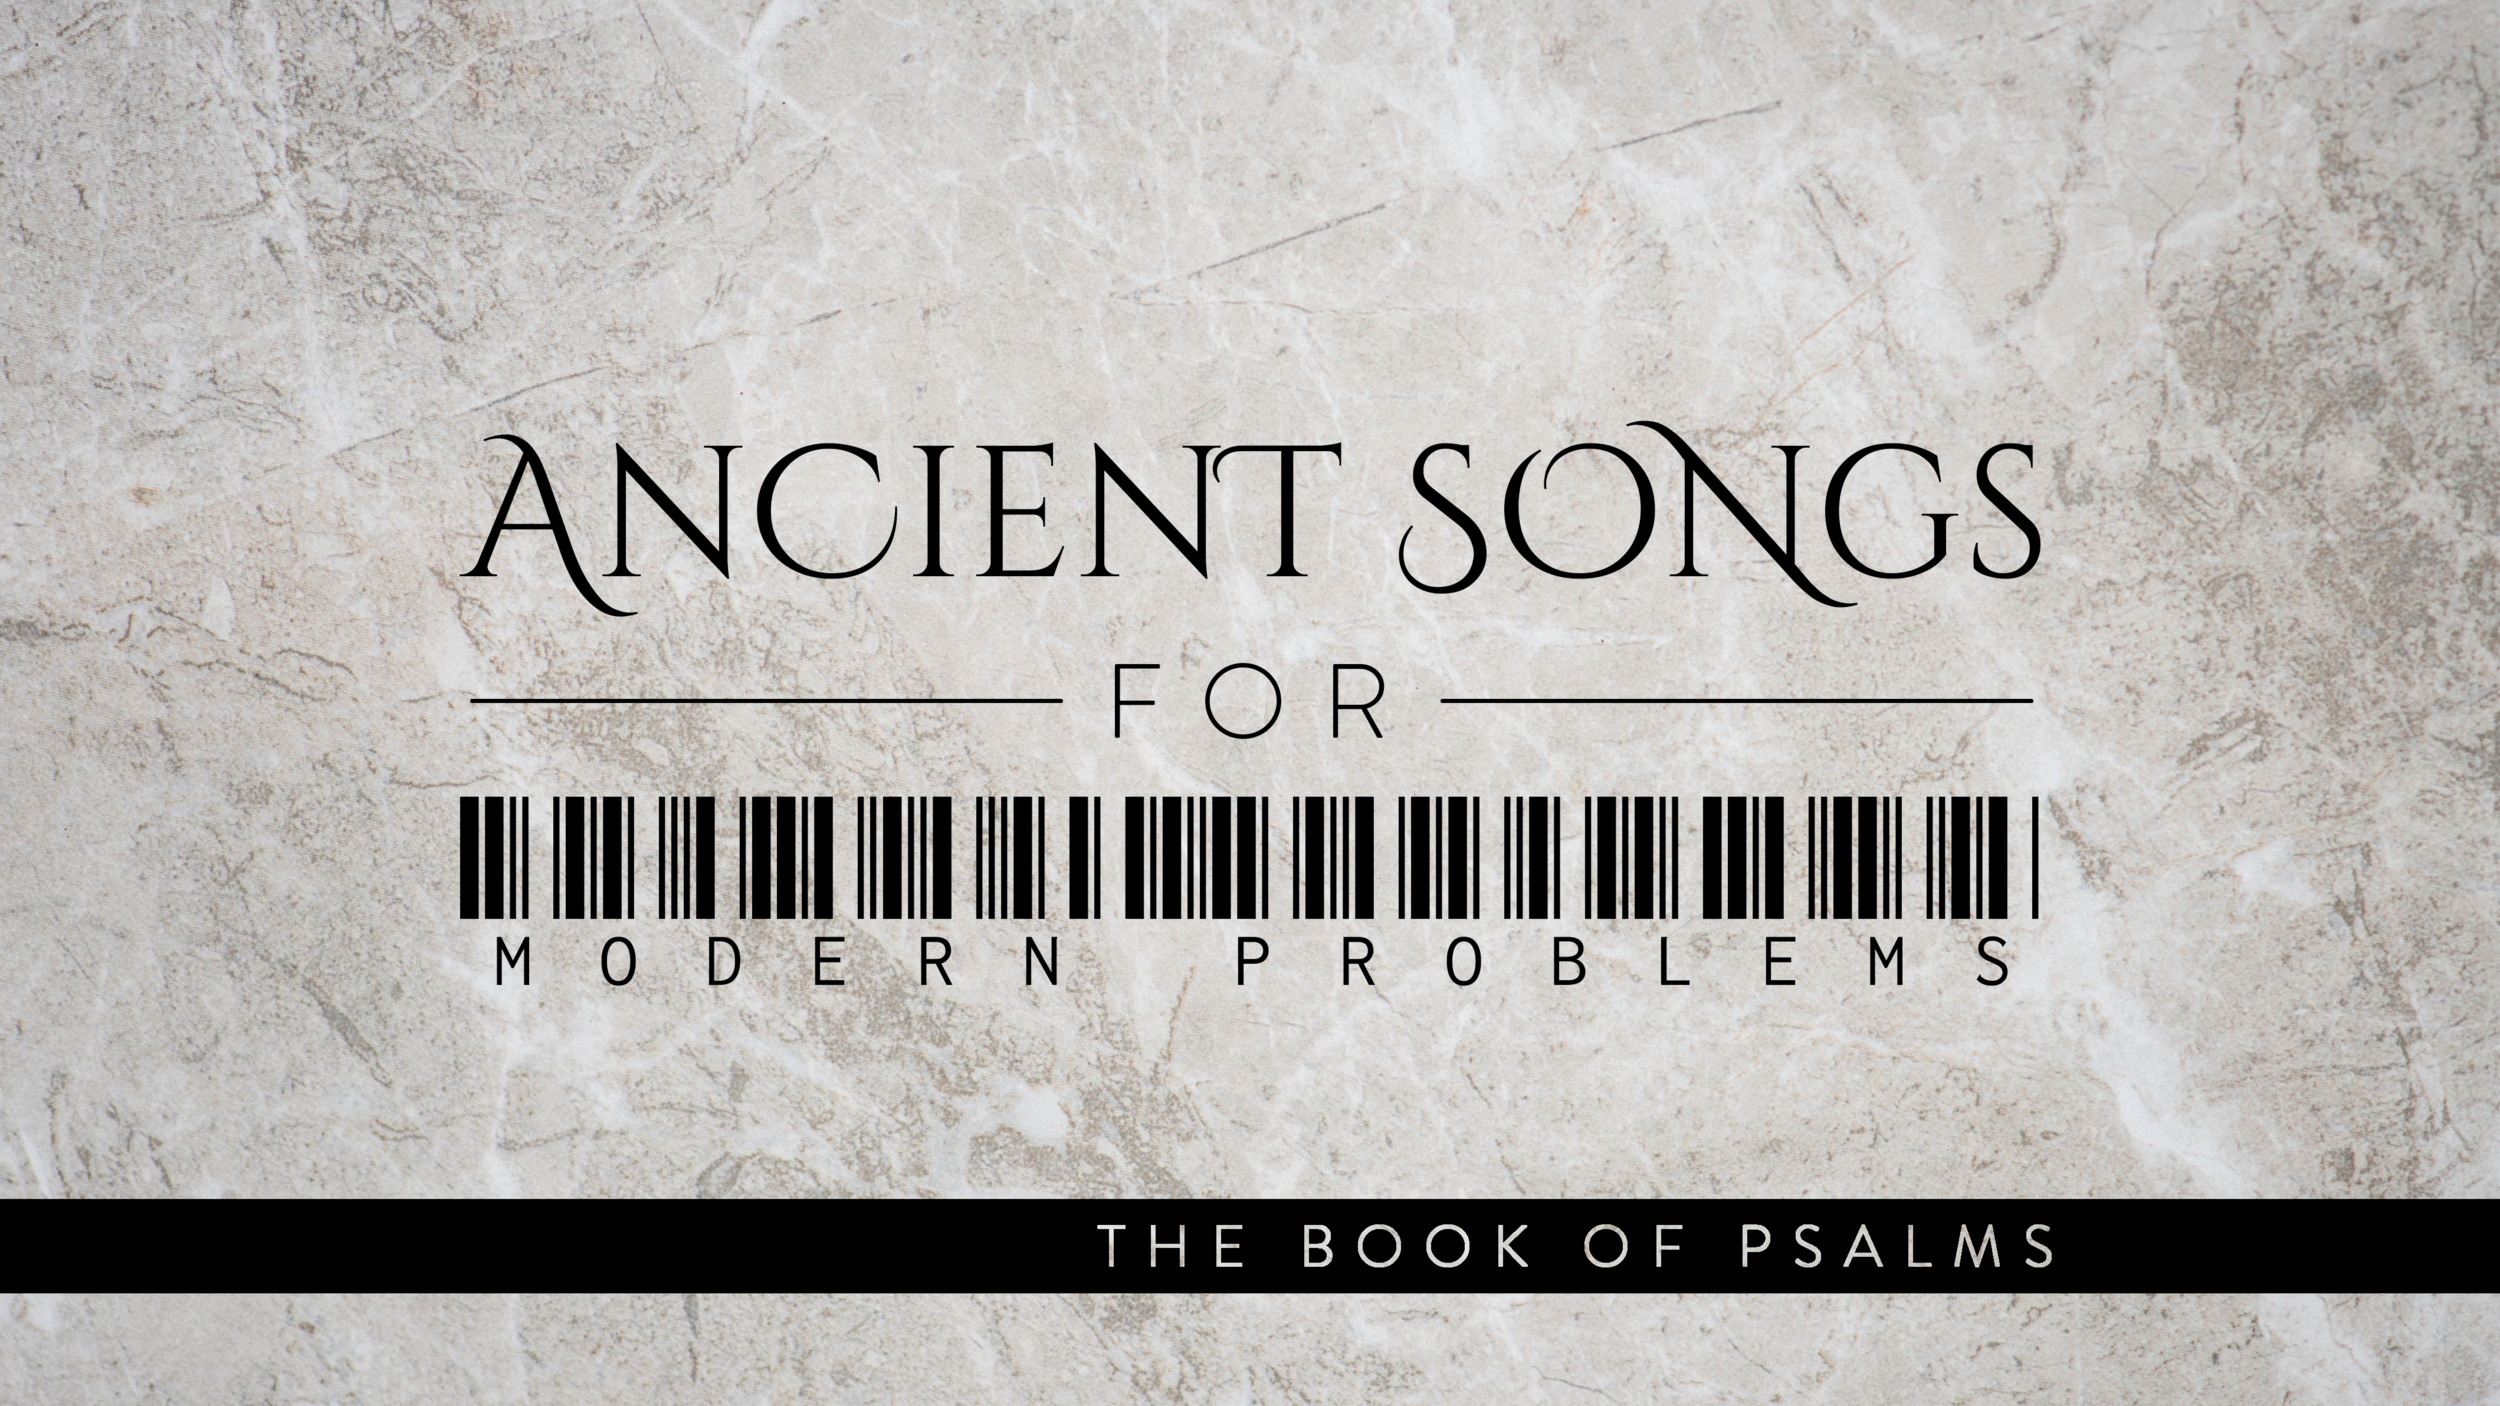 Ancient Songs for Modern Problems: The Book of Psalms - 1. Discovering God's Goodness2. Overcoming Spiritual Dryness3. Overcoming Fatherlessness4. Overcoming Guilt5. Overcoming Envy6. Overcoming Despair at Life's Circumstances7. The Search for Identity8. The Necessity of Scripture